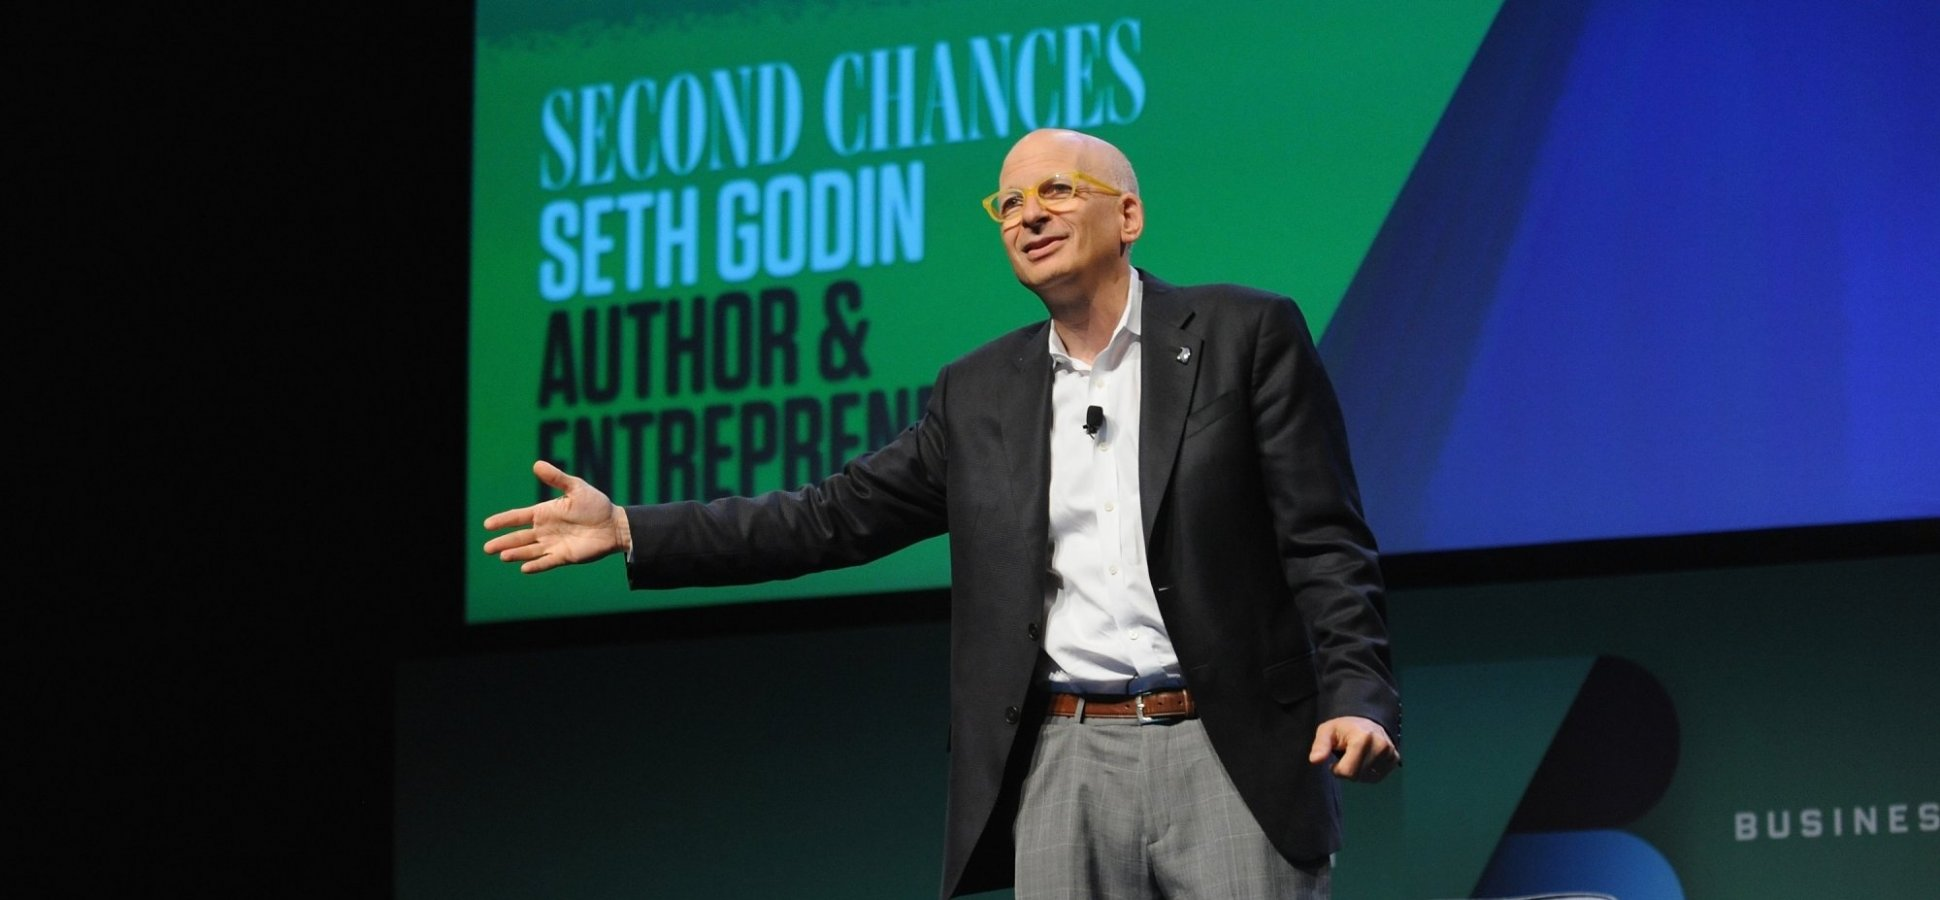 Seth Godin Says the Key to Marketing Success is to Focus on Answering This 1 Question